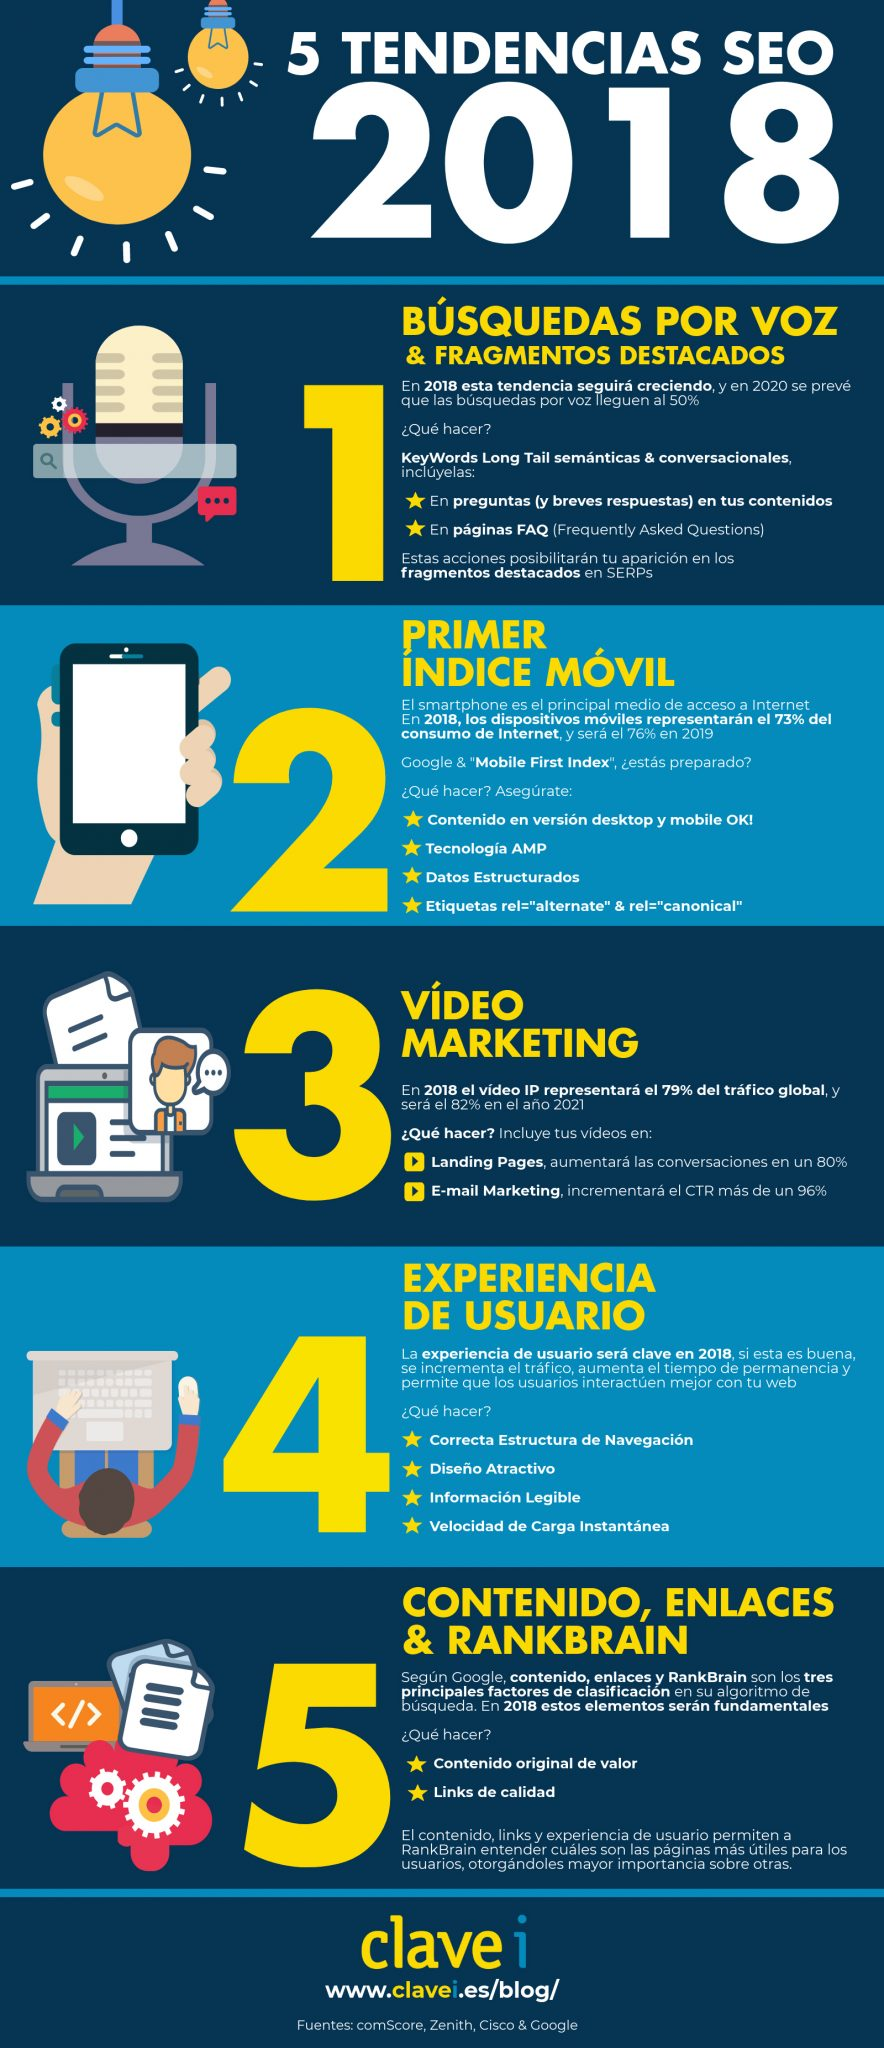 5 Tendencias SEO